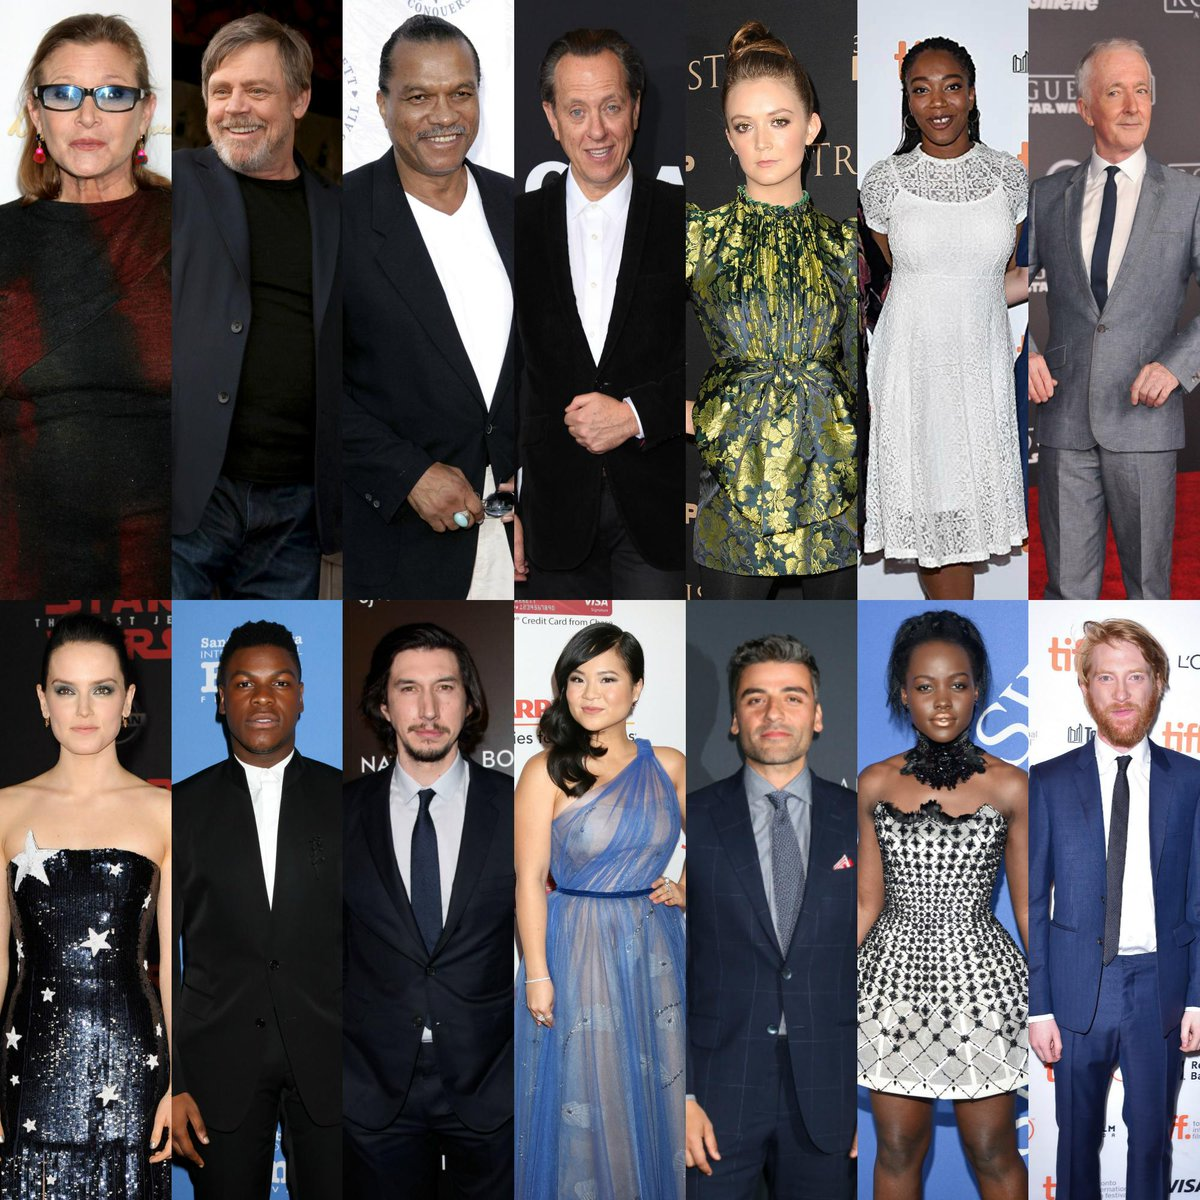 star wars 2019 cast